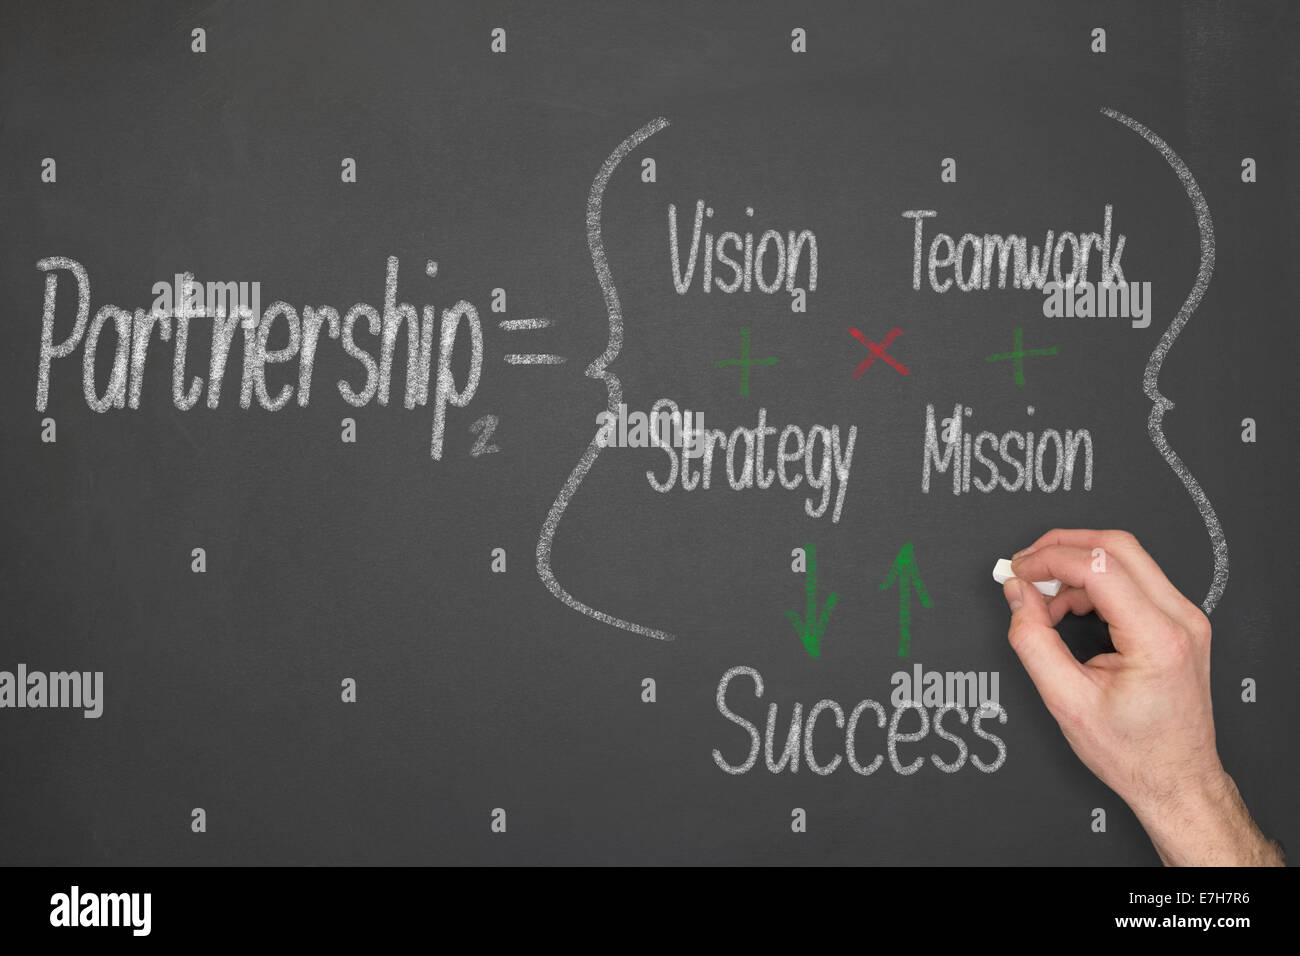 Partnership concept formula on a chalkboard - Stock Image